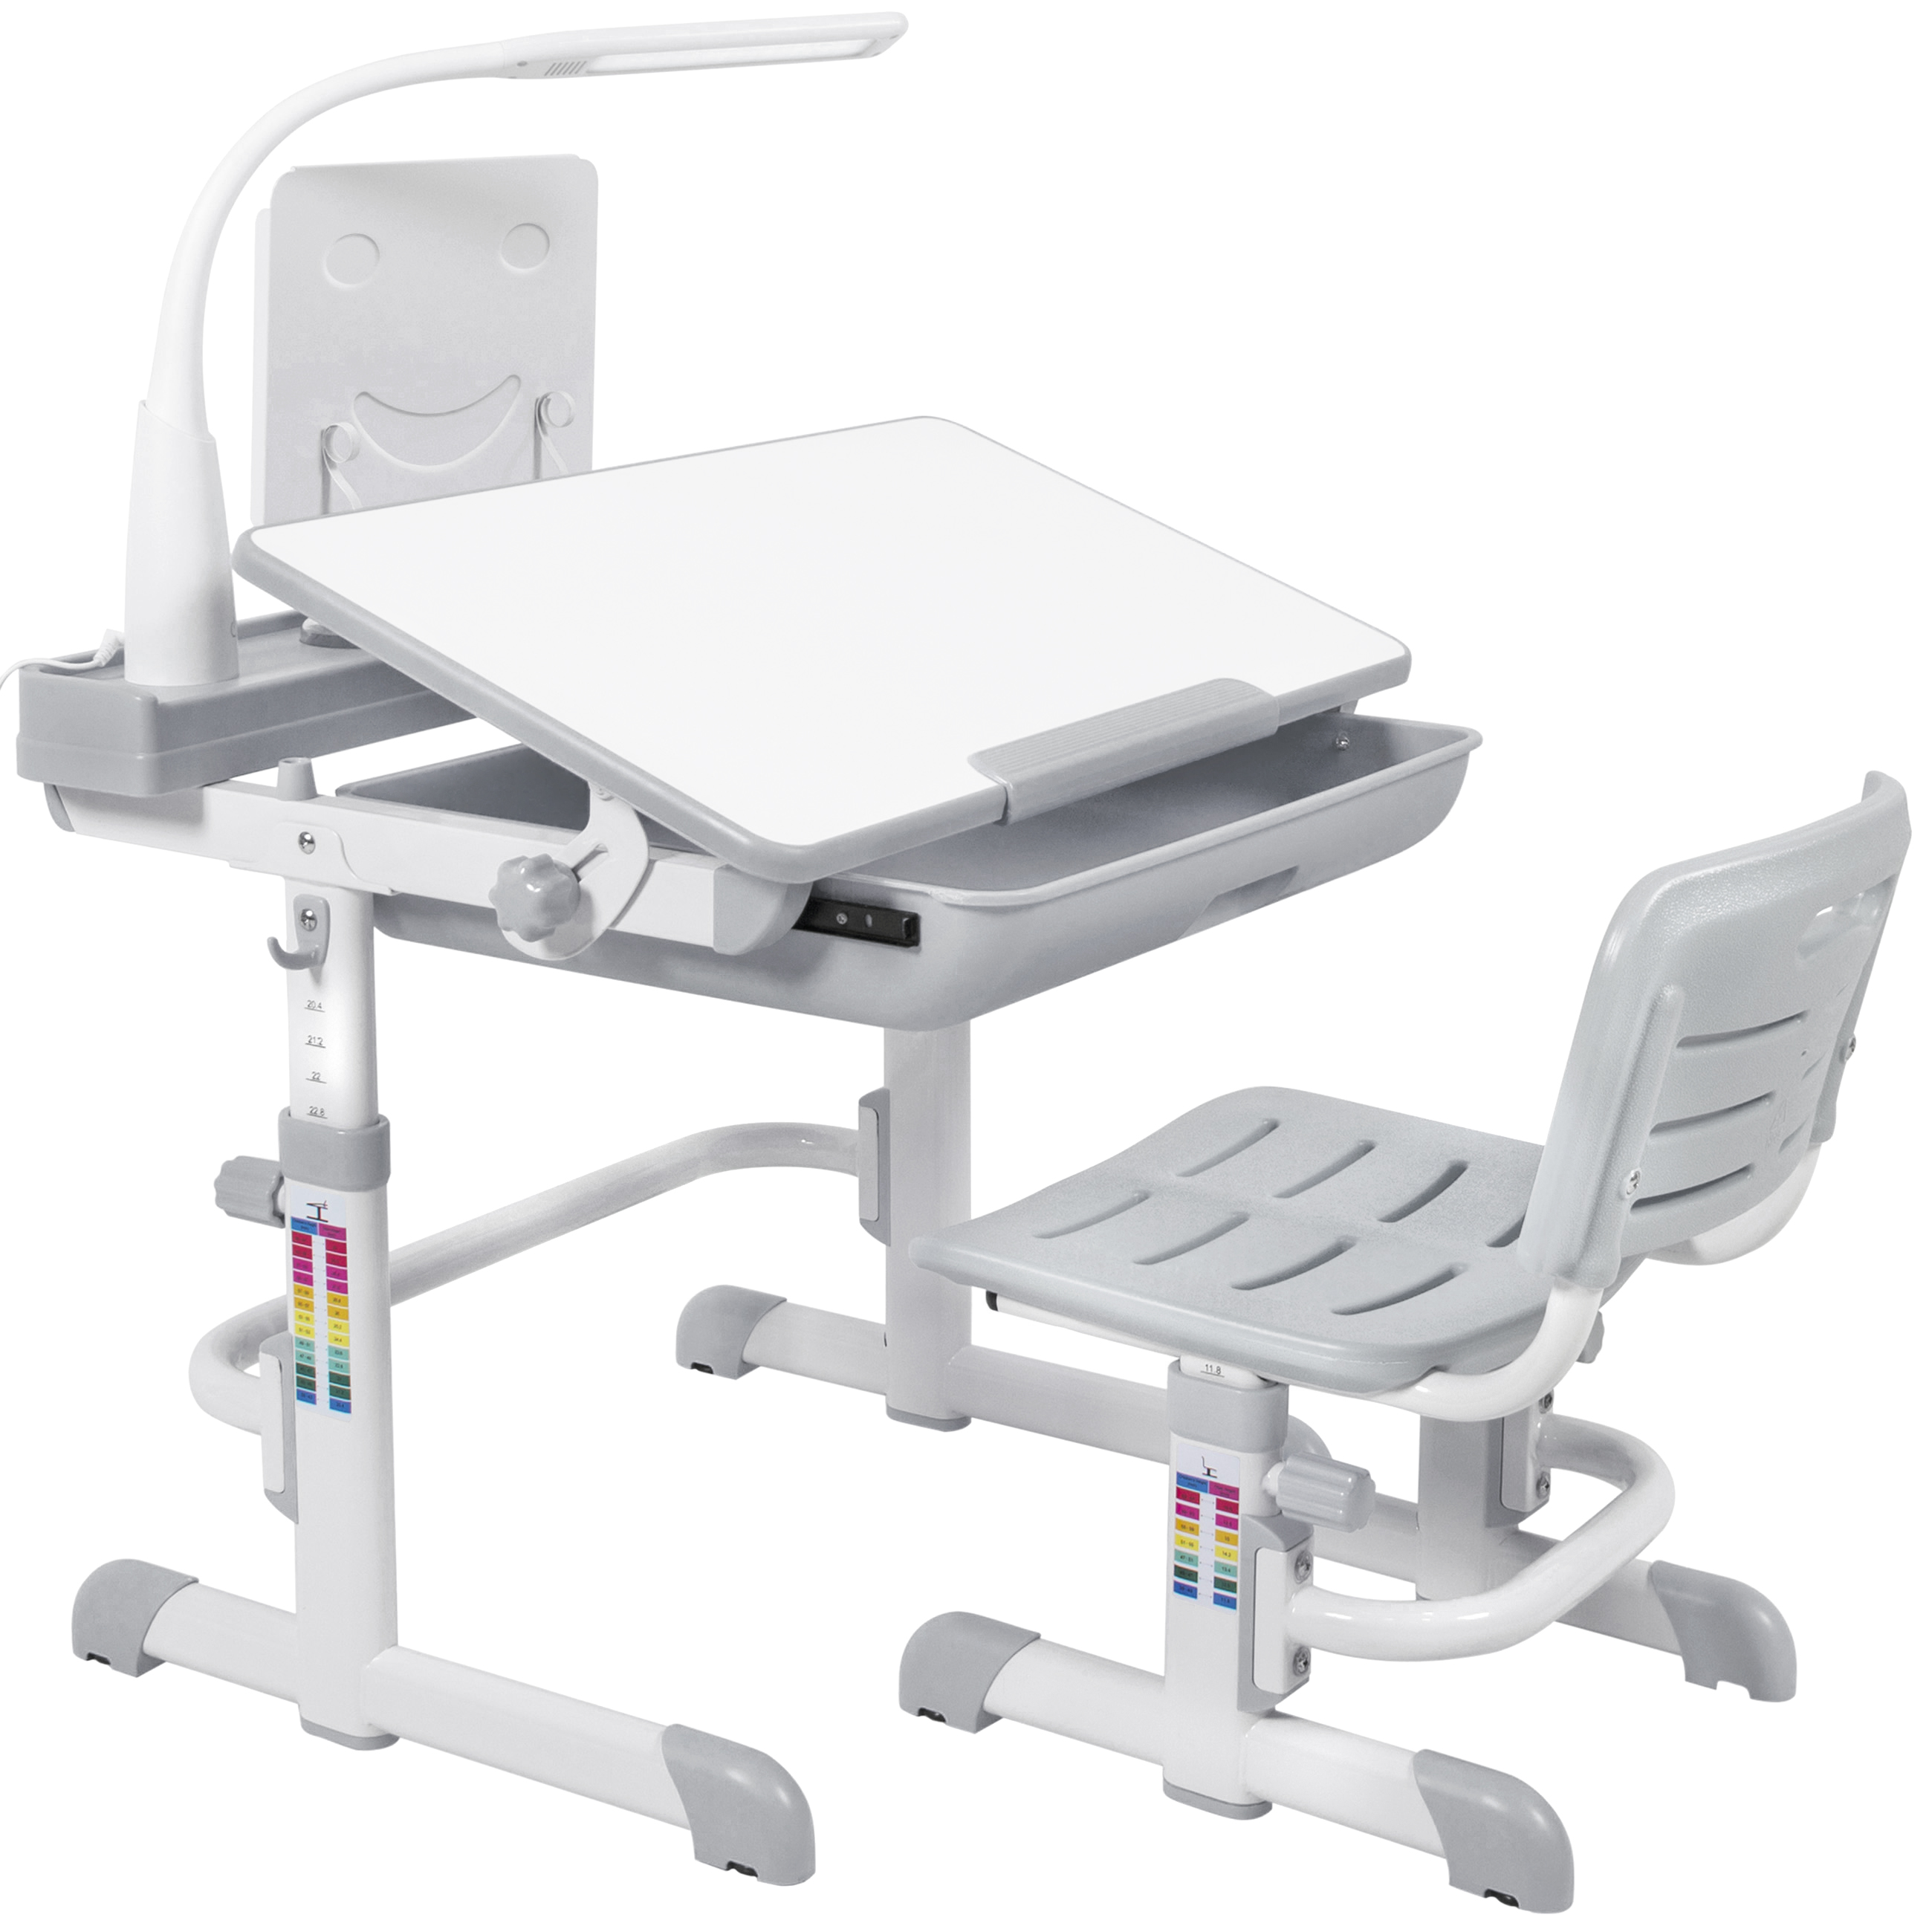 Best Choice S Height Adjule Children Desk And Chair Set For Kids Work Station Study Area Gray Com